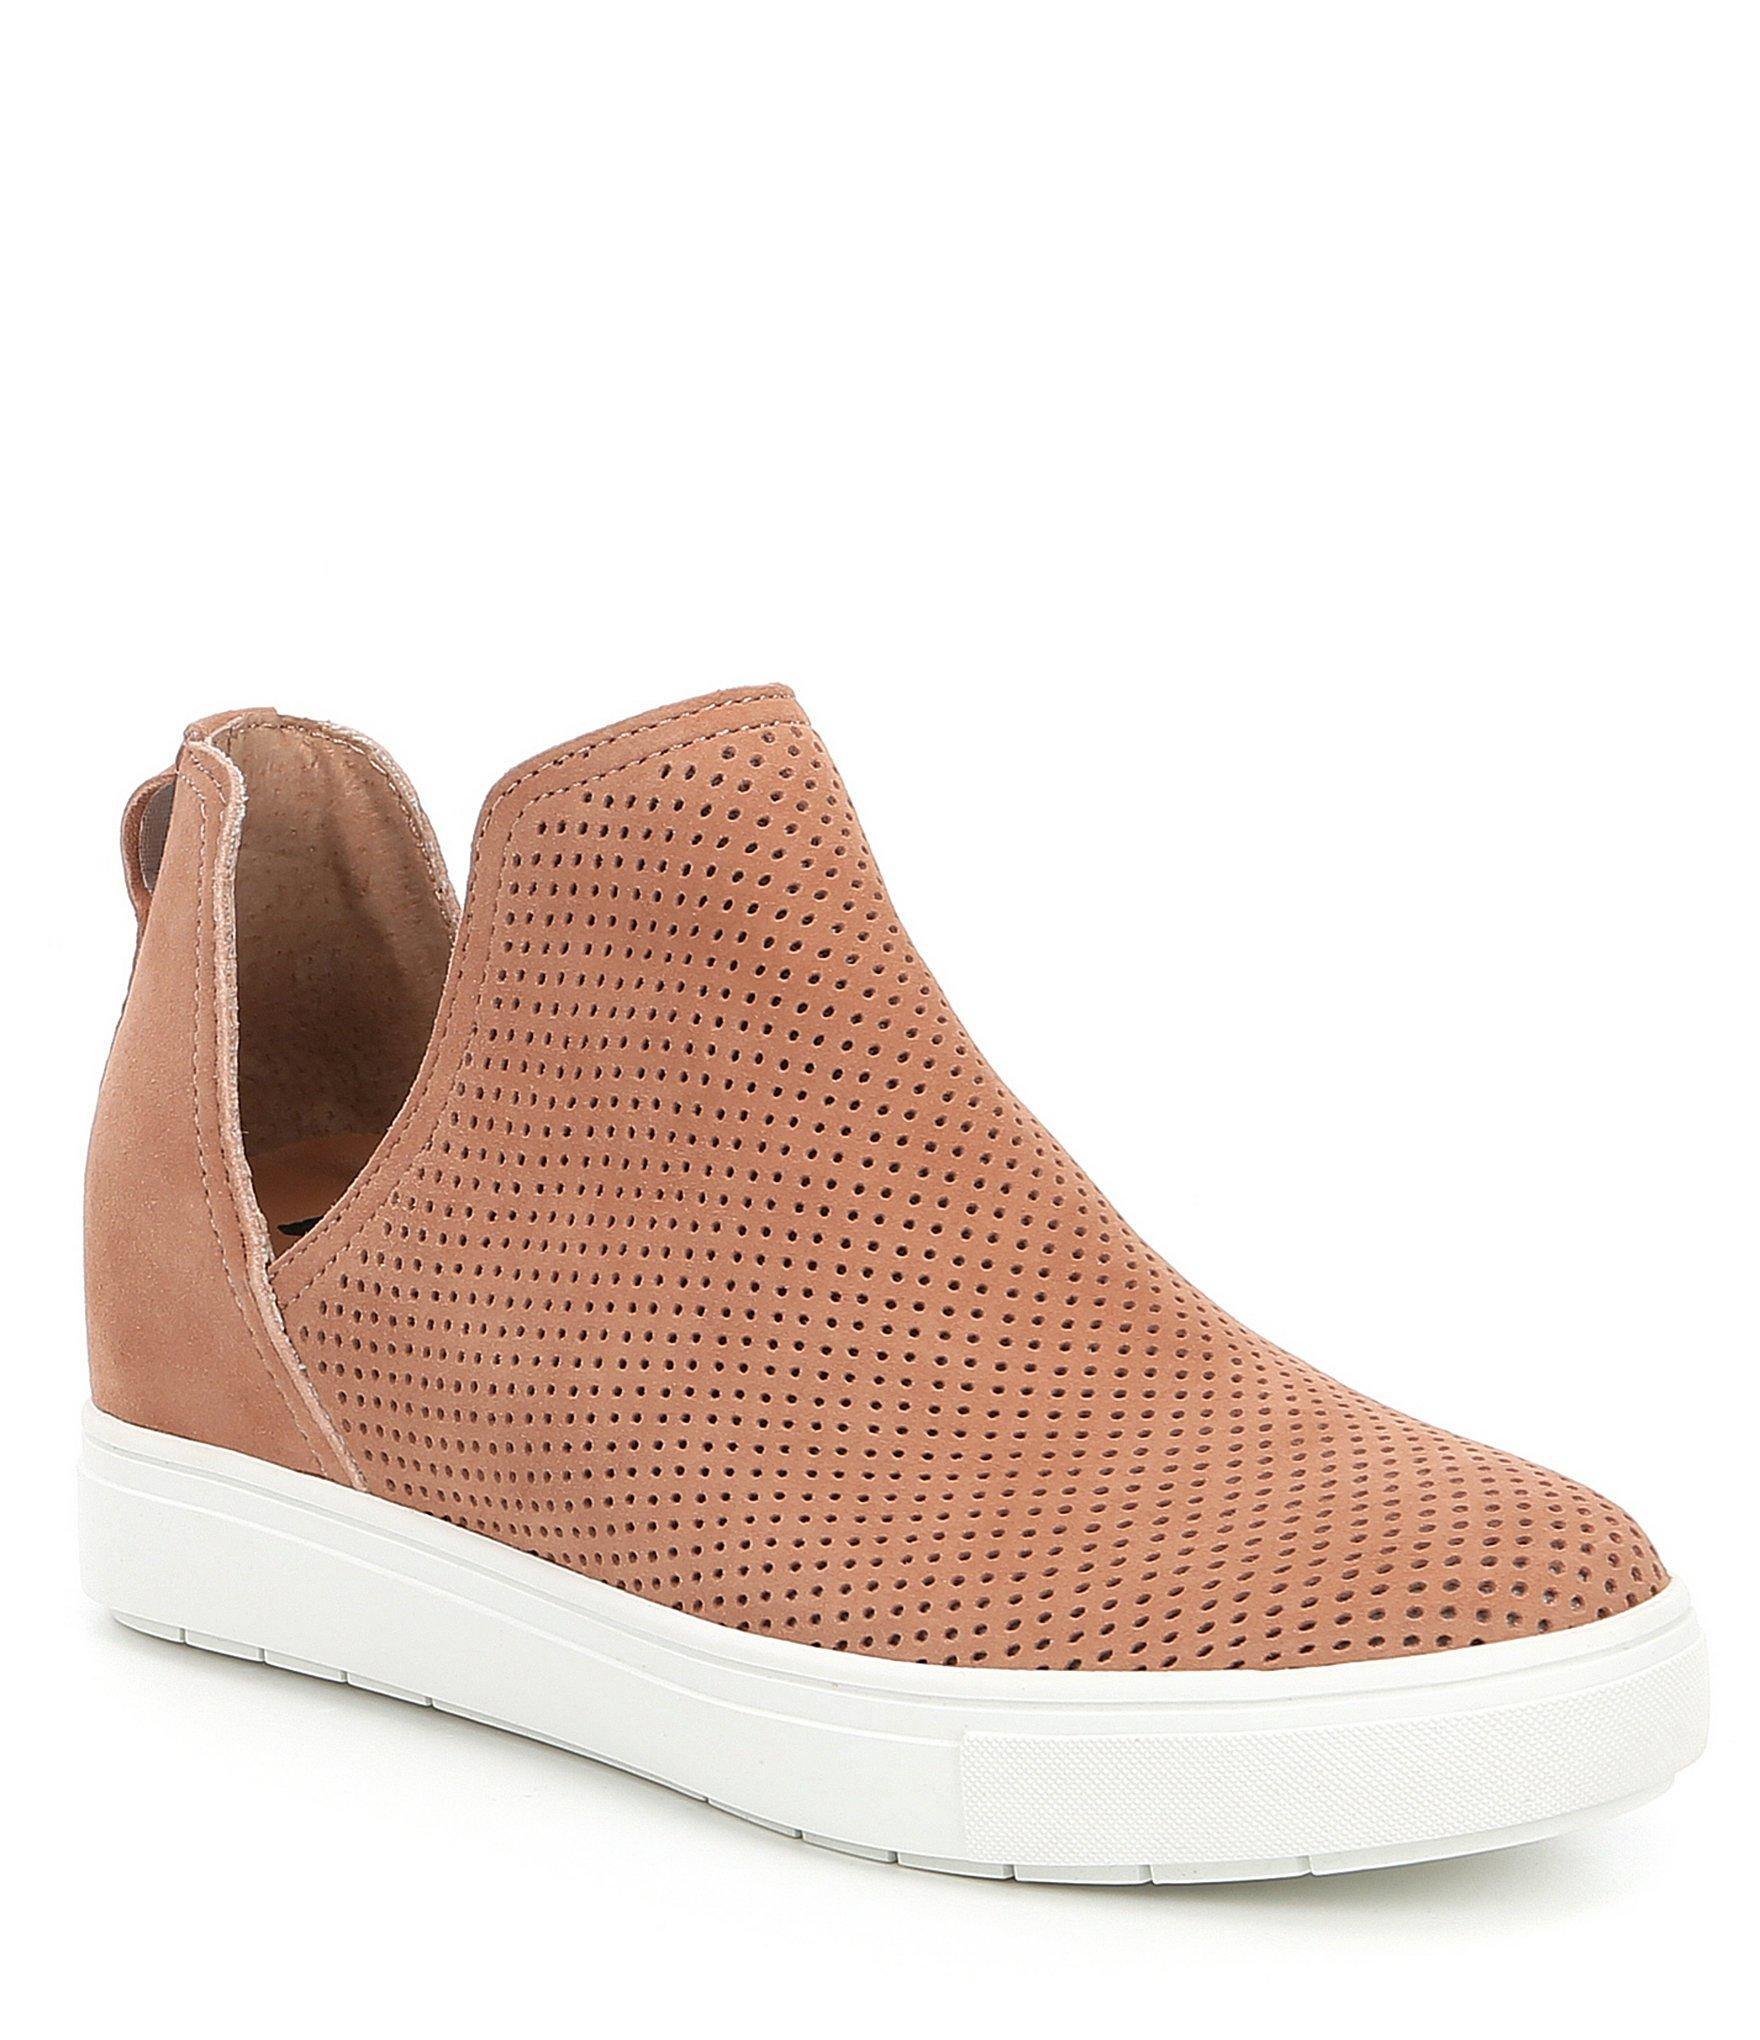 e21a3d400b67 Lyst - Steve Madden Steven By Canaresp Suede Wedge Sneakers in Brown